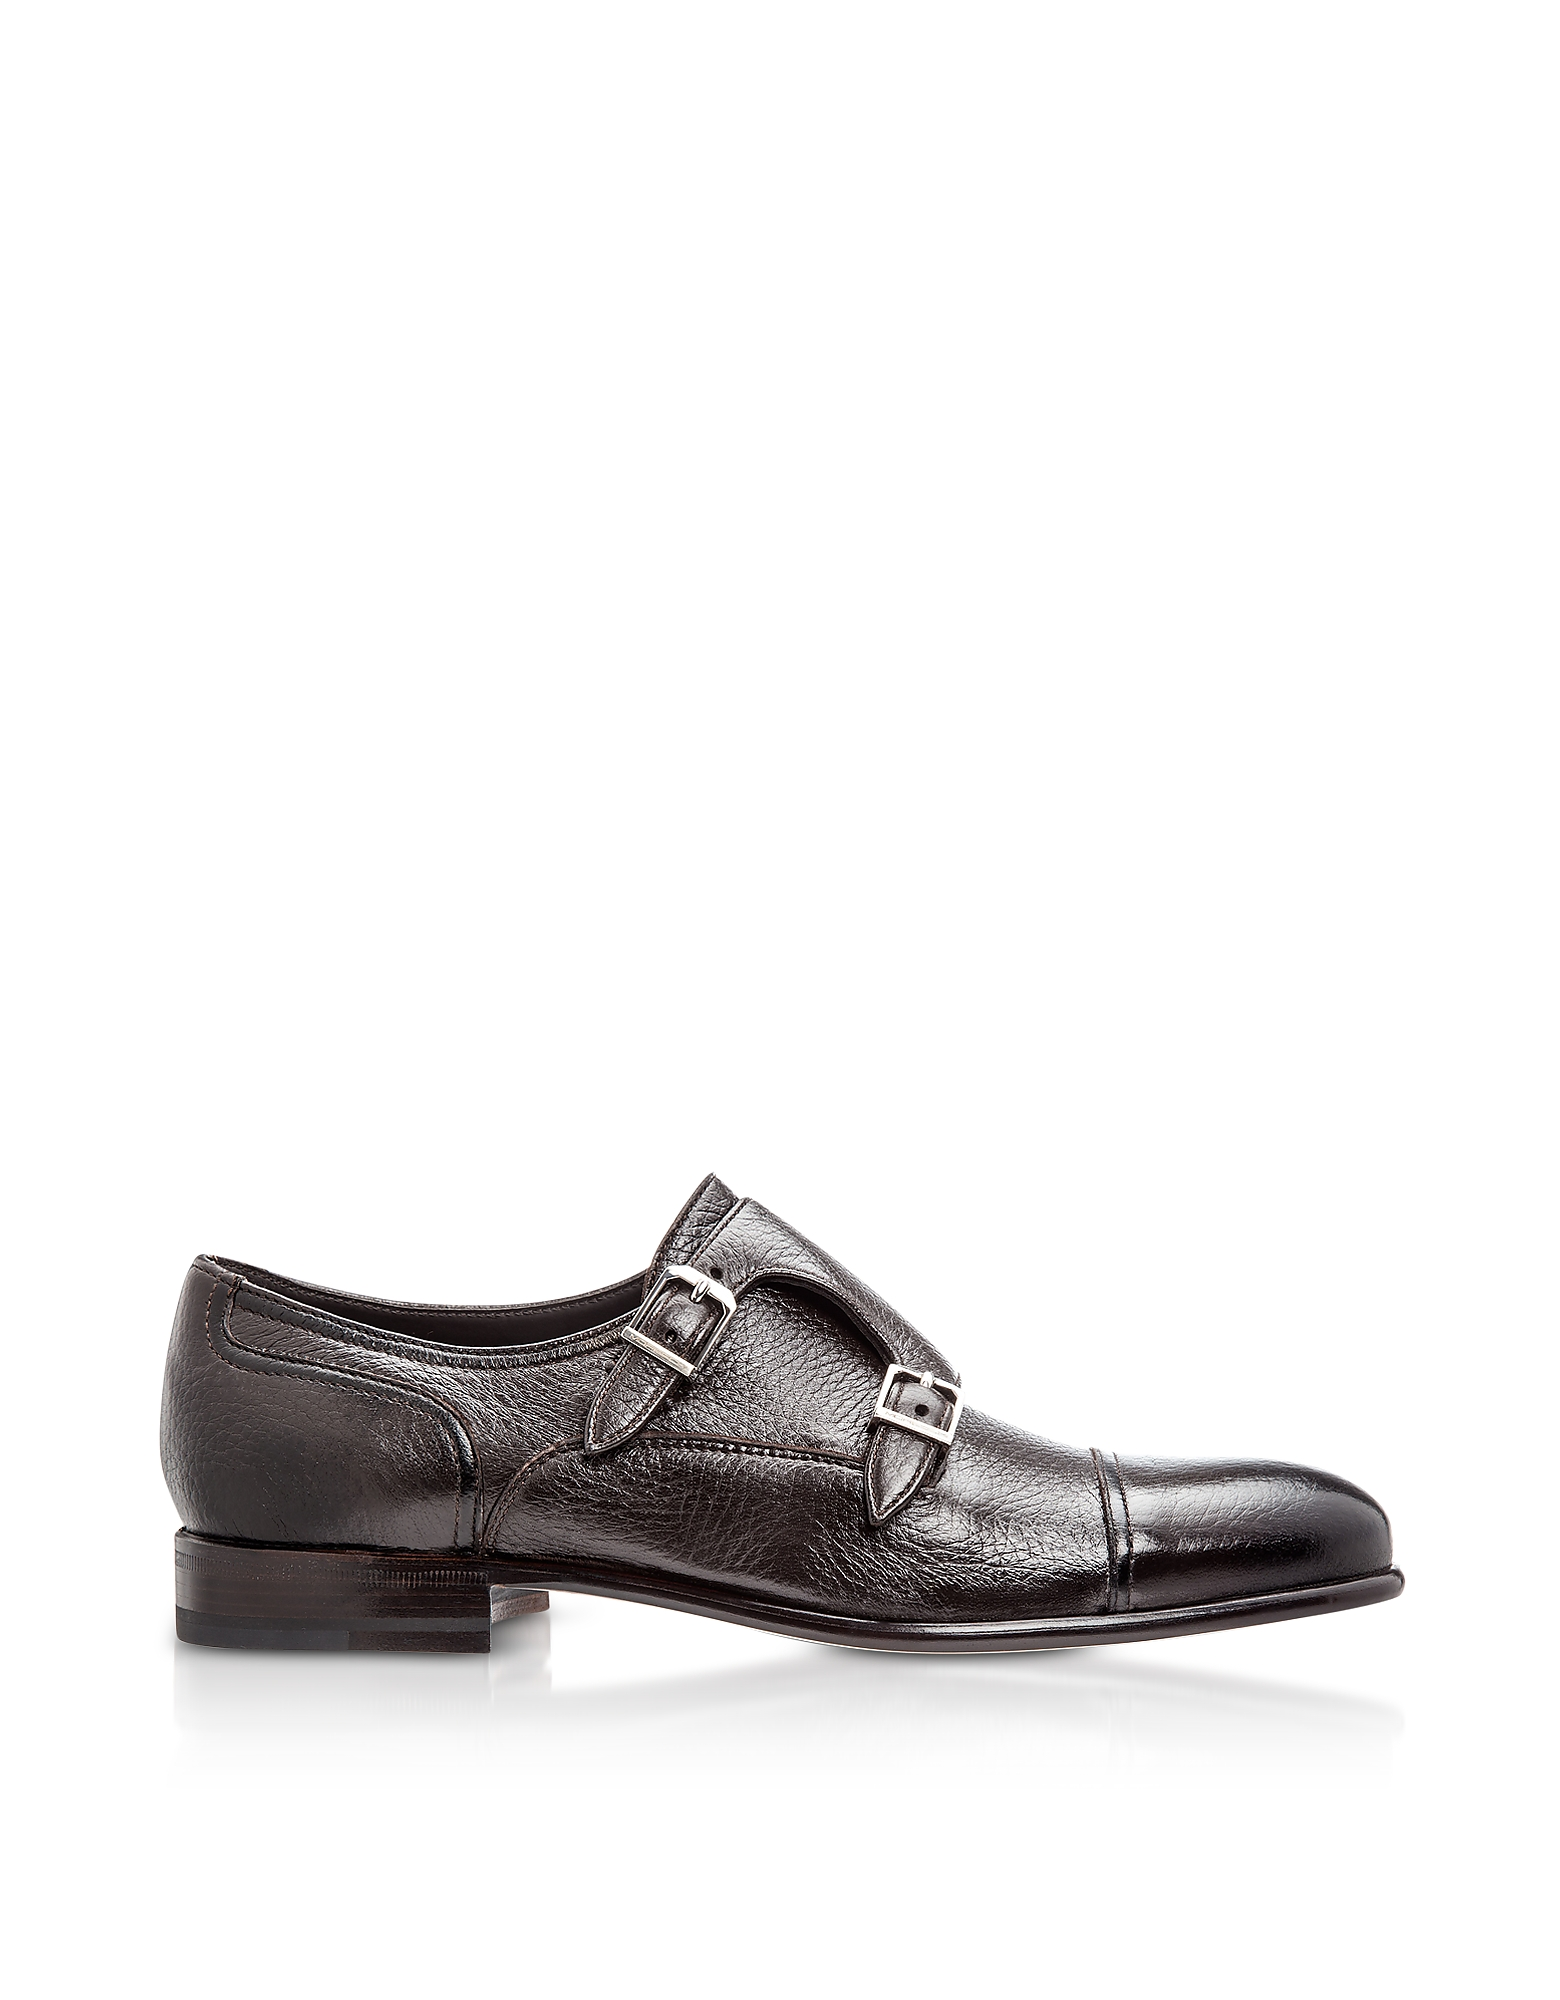 Moreschi Designer Shoes, Eze Dark Brown Deerskin Monk Shoes